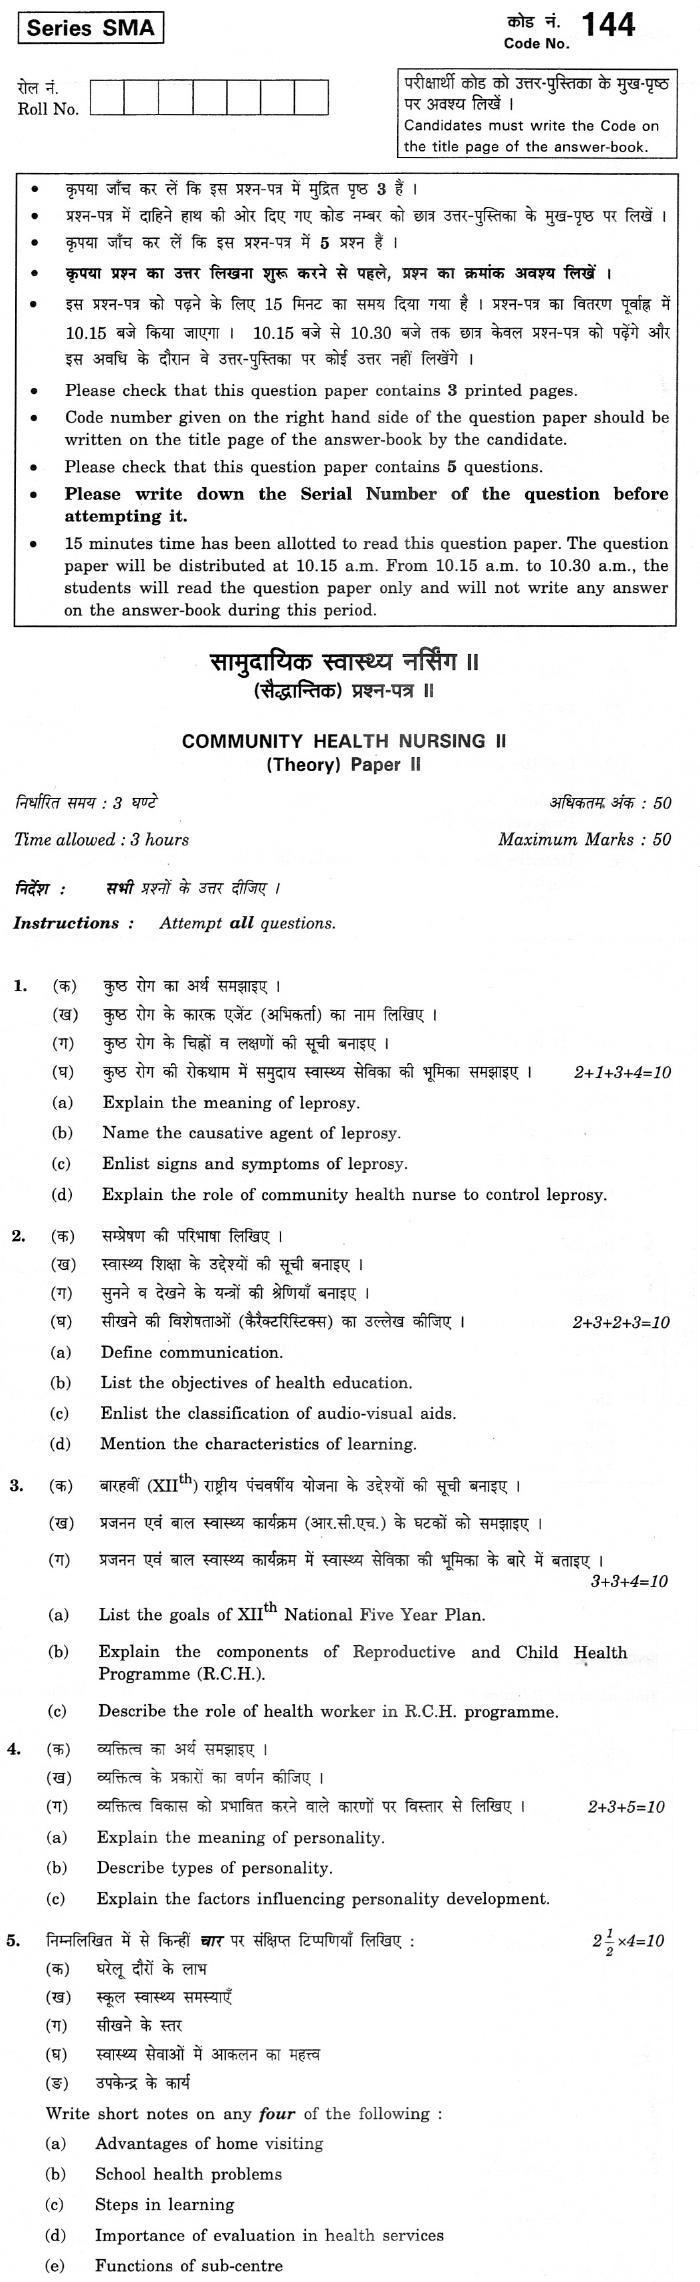 CBSE Class XII Previous Year Question Paper 2012 Commmunity health nursing II